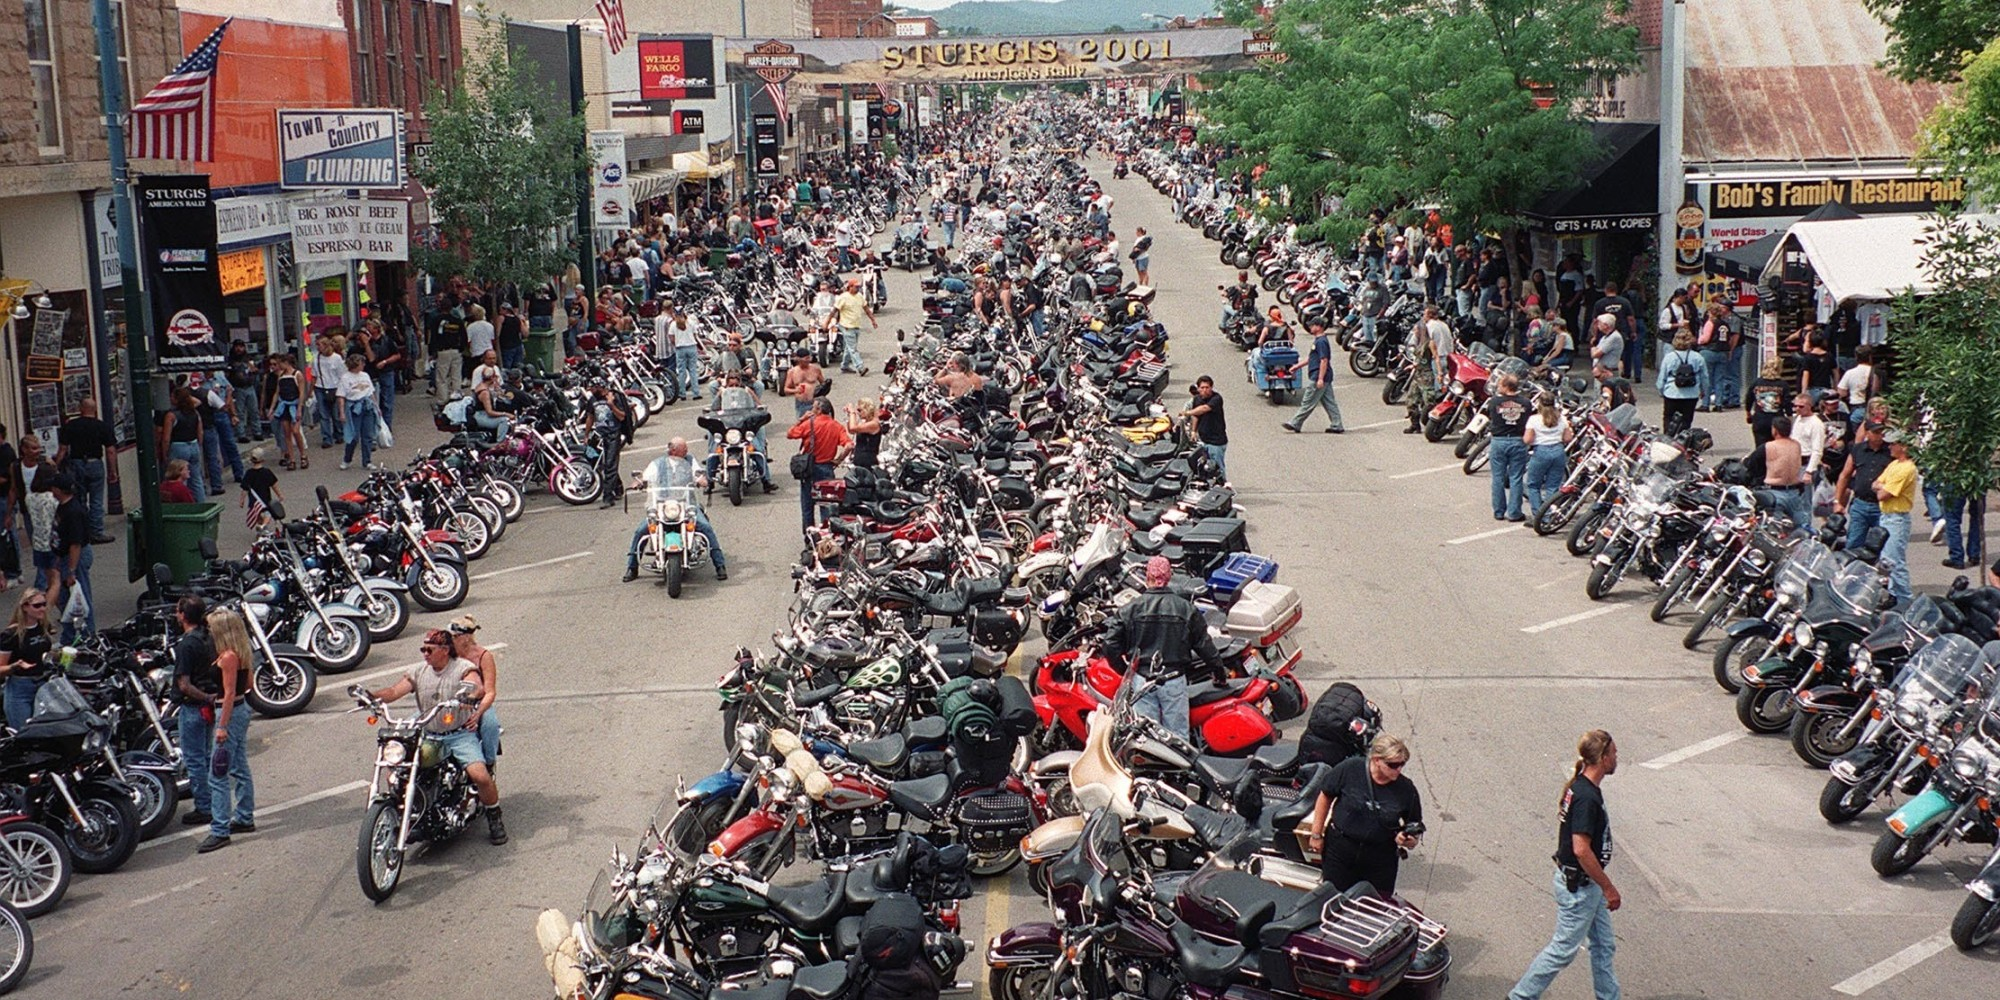 Macabre Betting Pool On Sturgis Motorcycle Rally Deaths